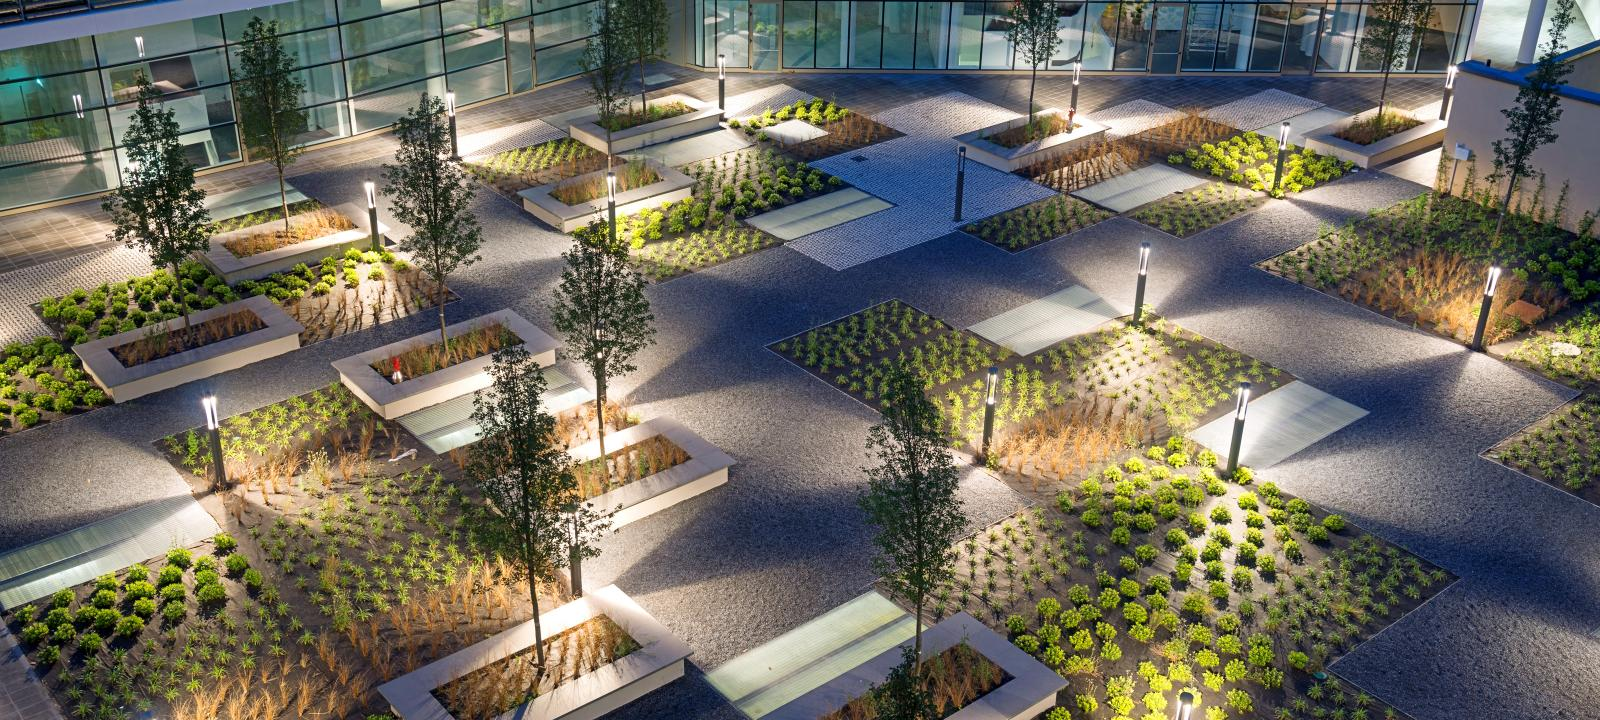 Illuminated courtyard with Sedum plant beds and small trees at night